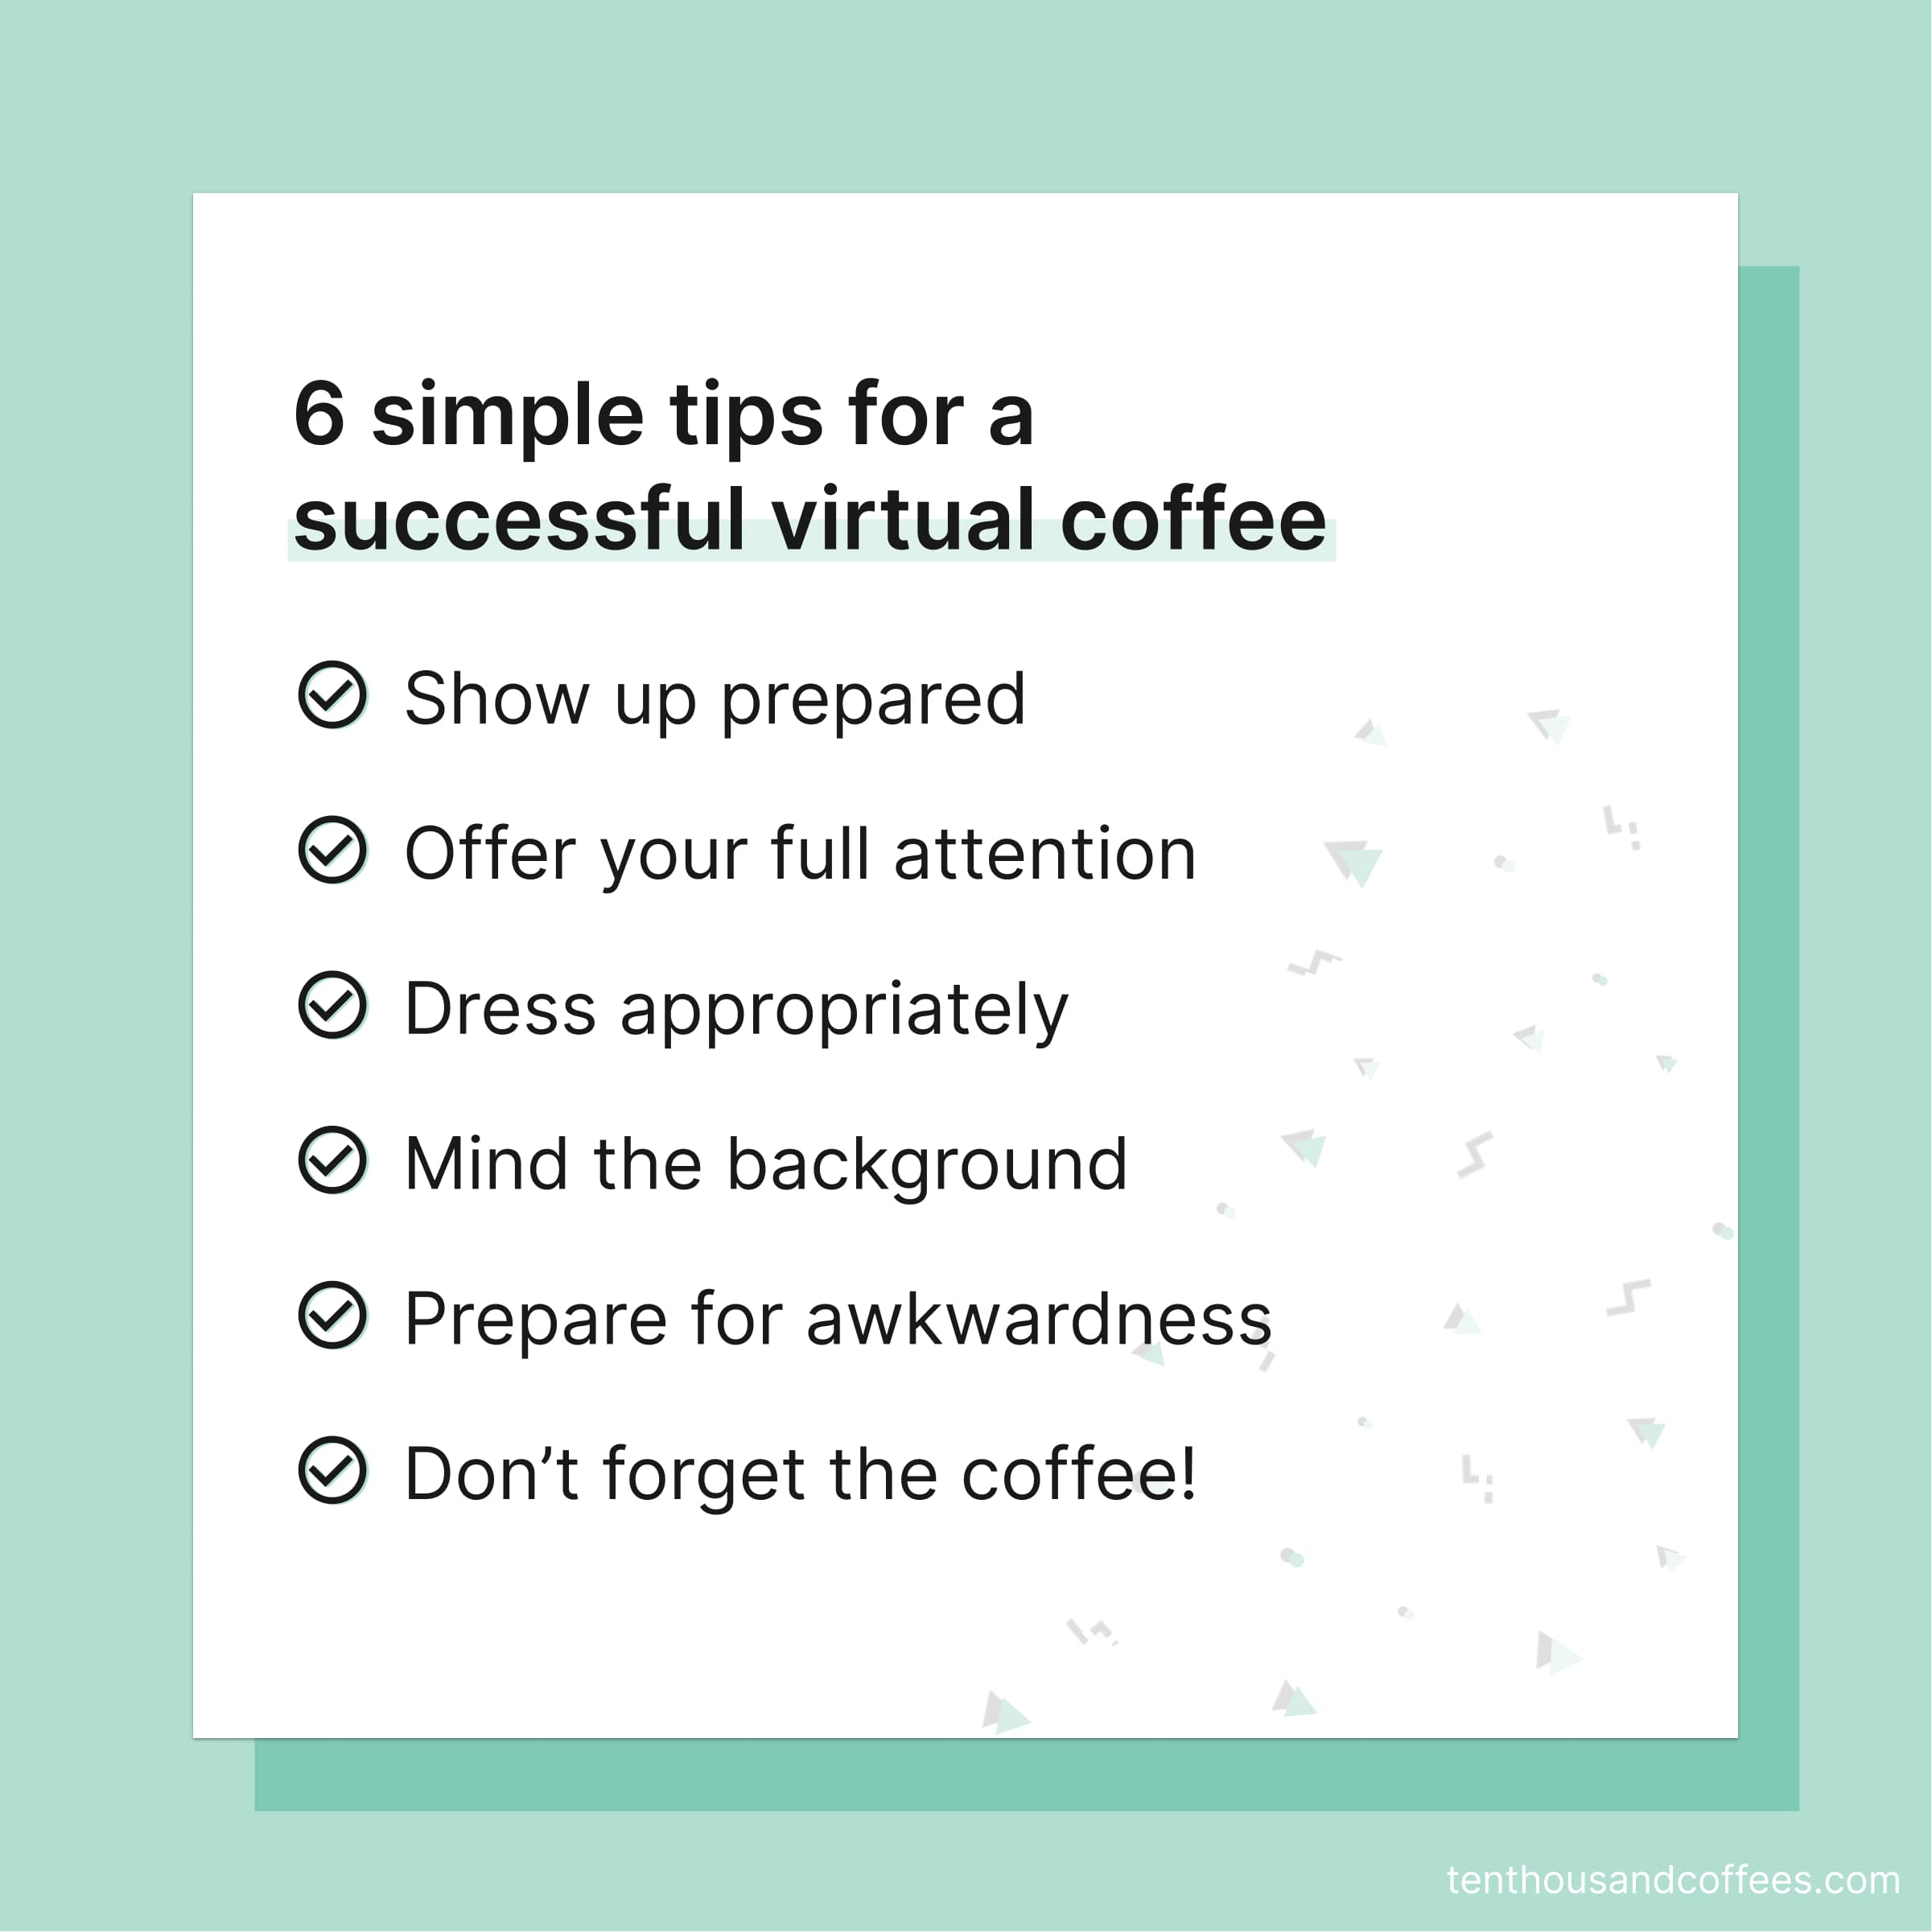 6 tips for a successful virtual coffee